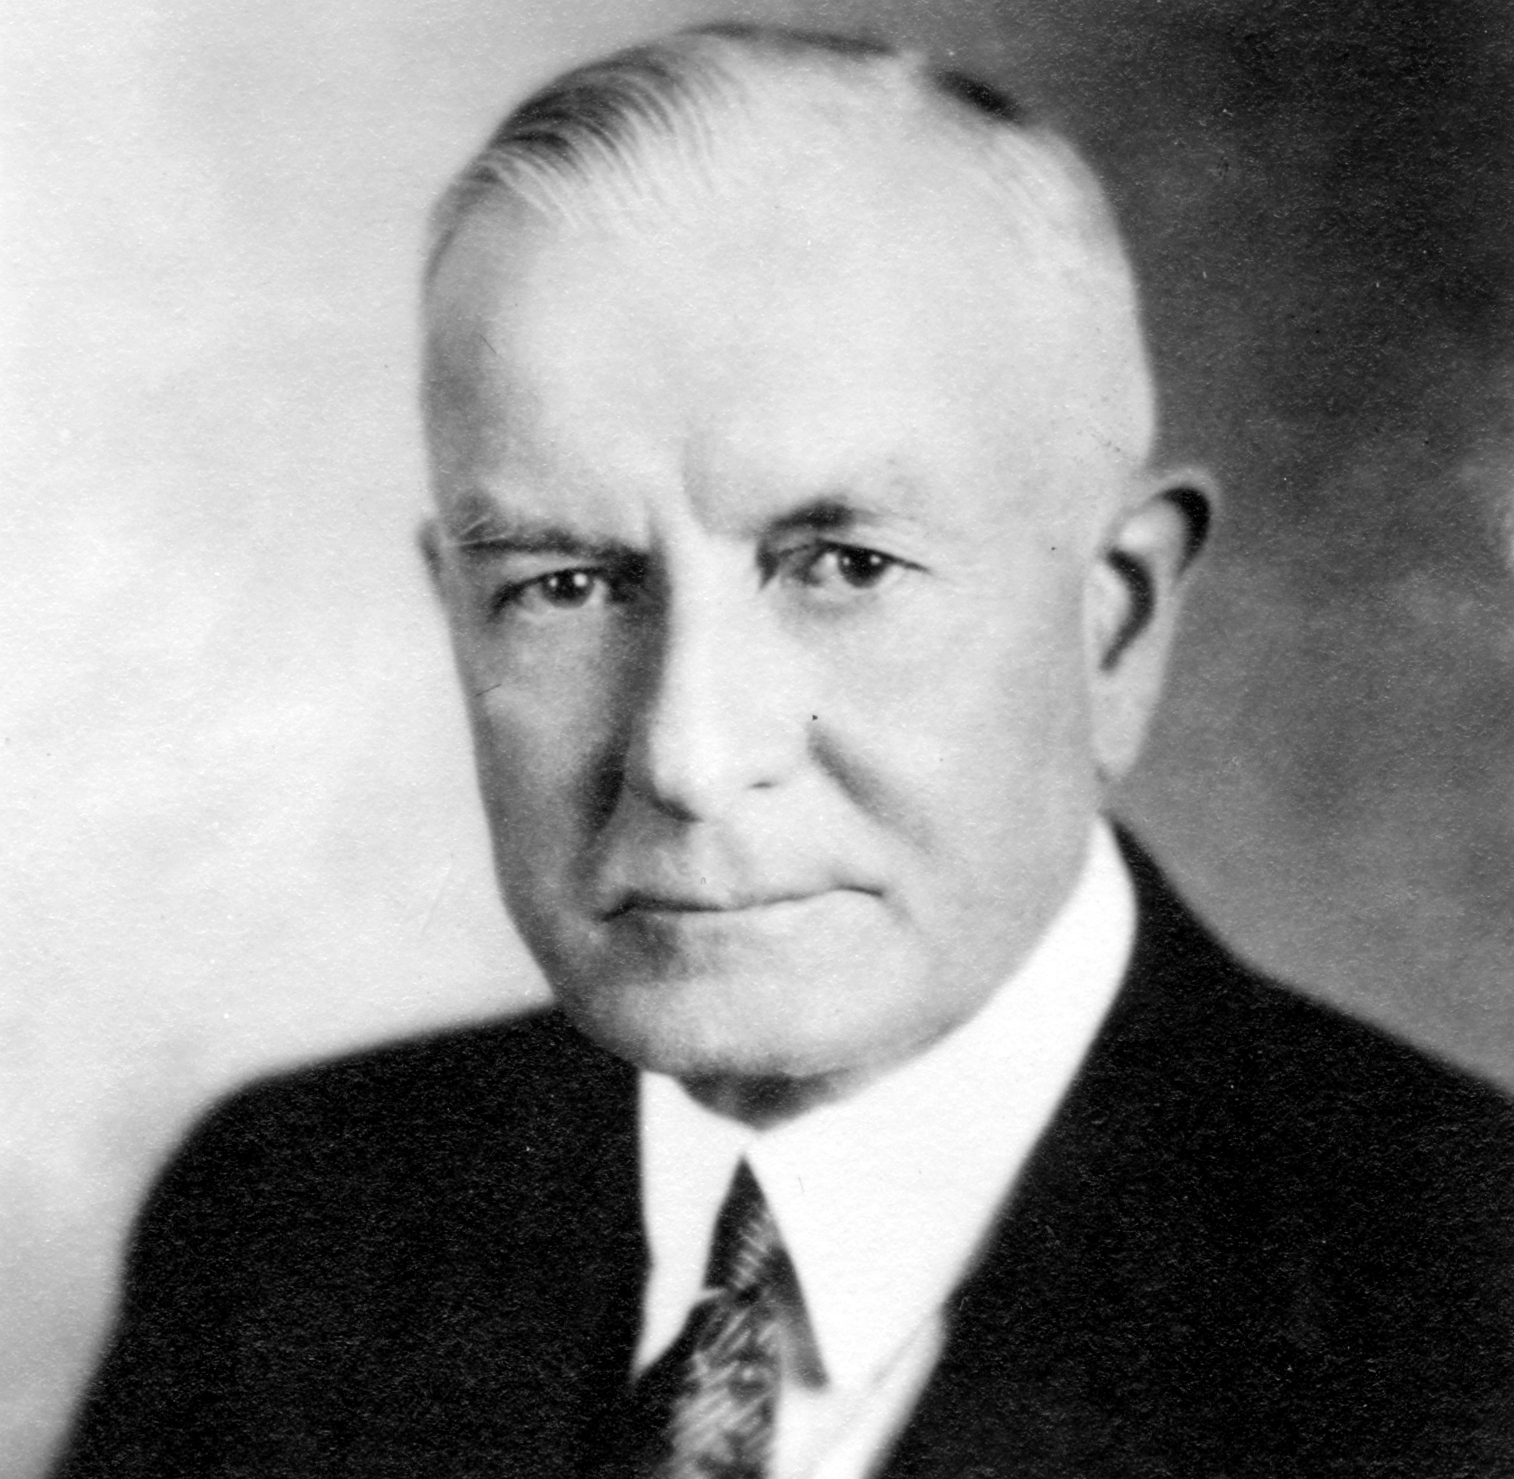 File:Thomas J Watson Sr.jpg - Wikipedia, the free encyclopedia